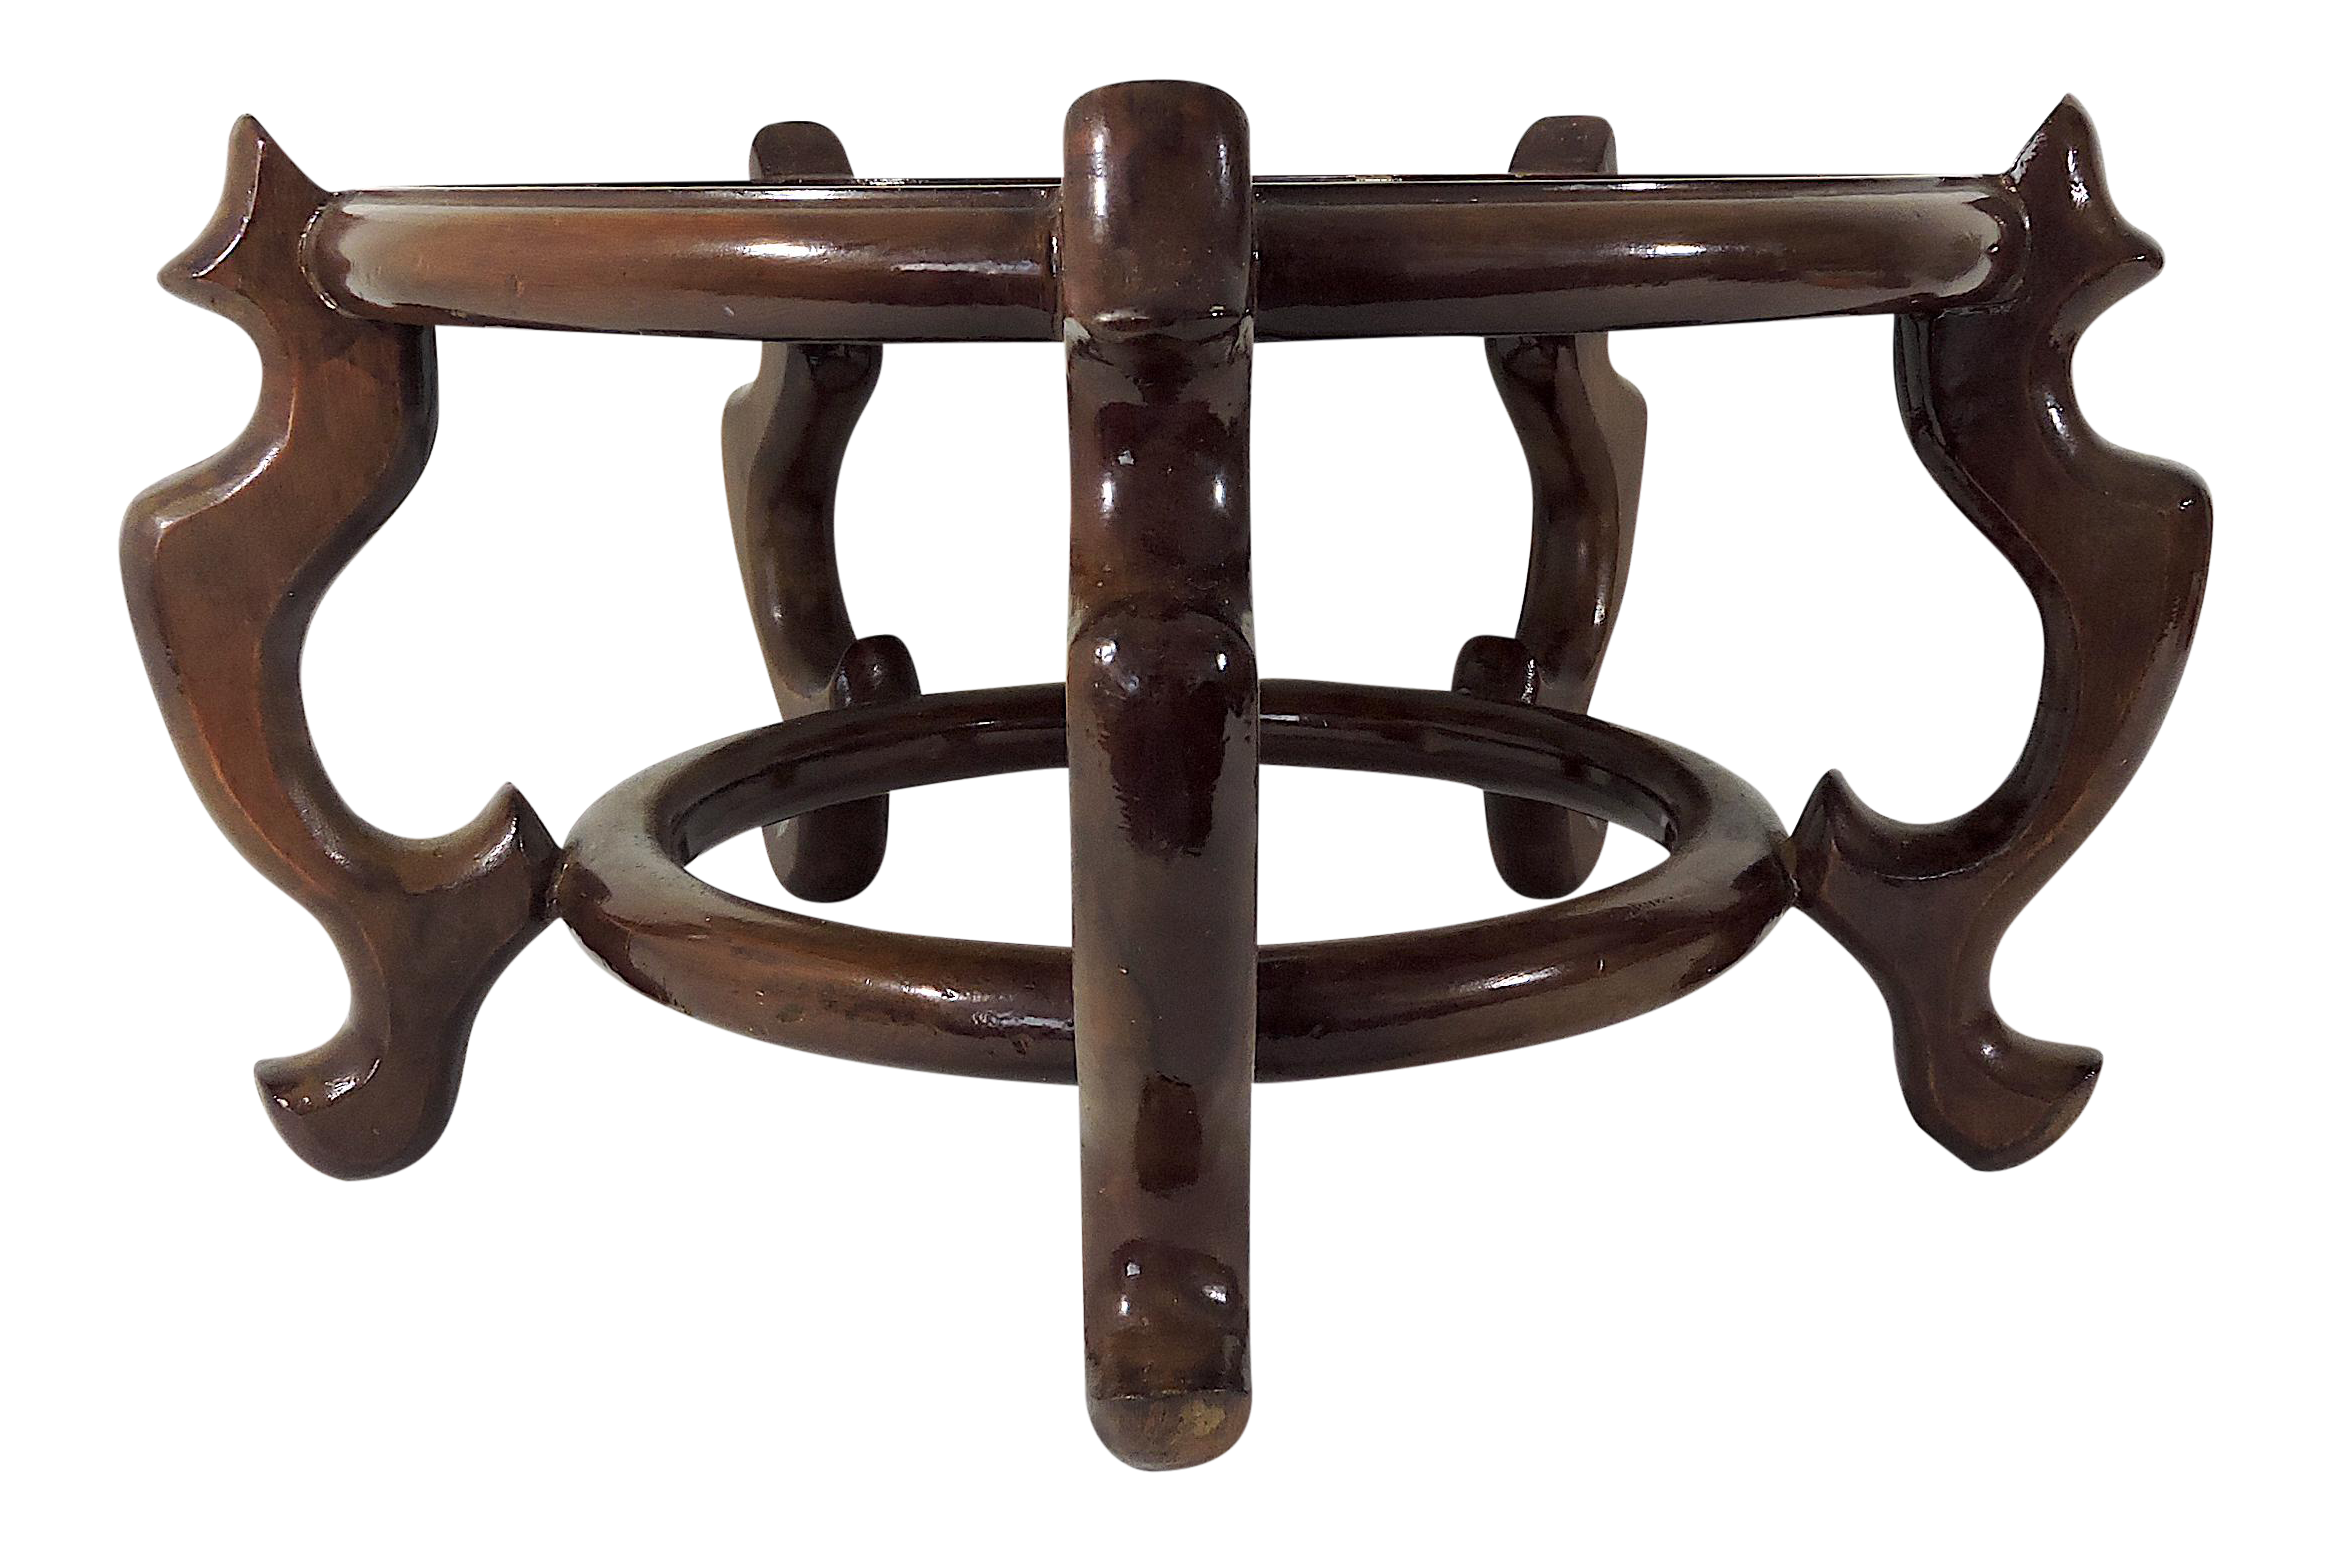 Vintage Solid Rosewood Chinese Planter Or Jardiniere Display Stand Or Pedestal 17 13 5 On Chairish Com Please Feel In 2020 Brown Interior Display Stand Plant Stand